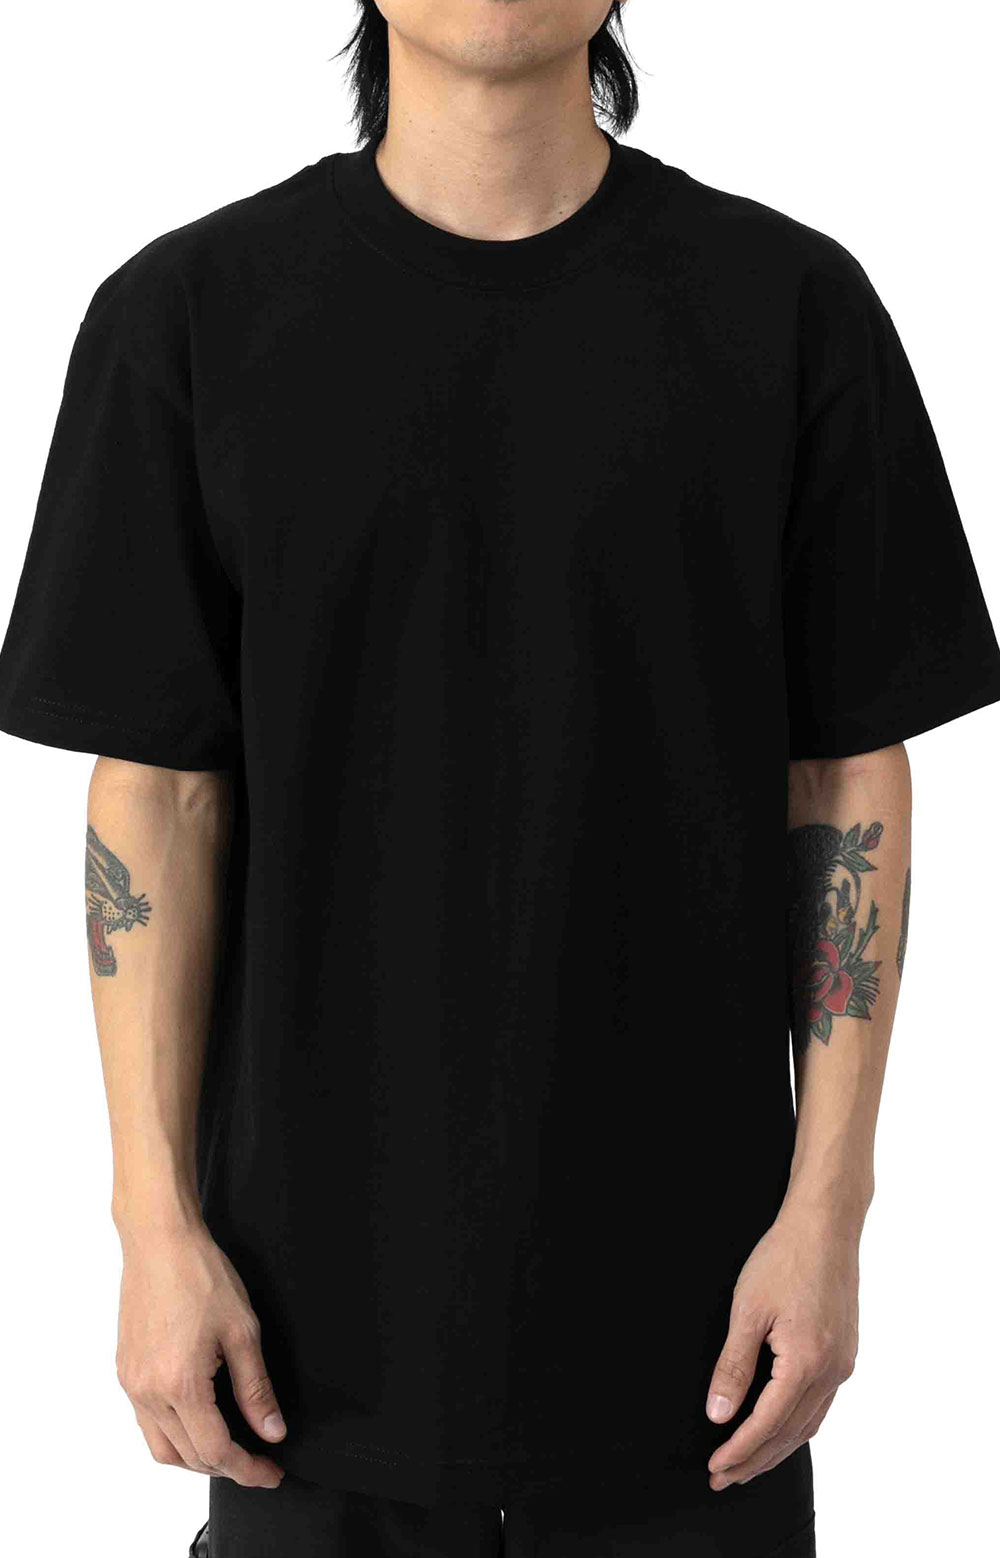 Max Heavyweight S/S T-Shirt - Black